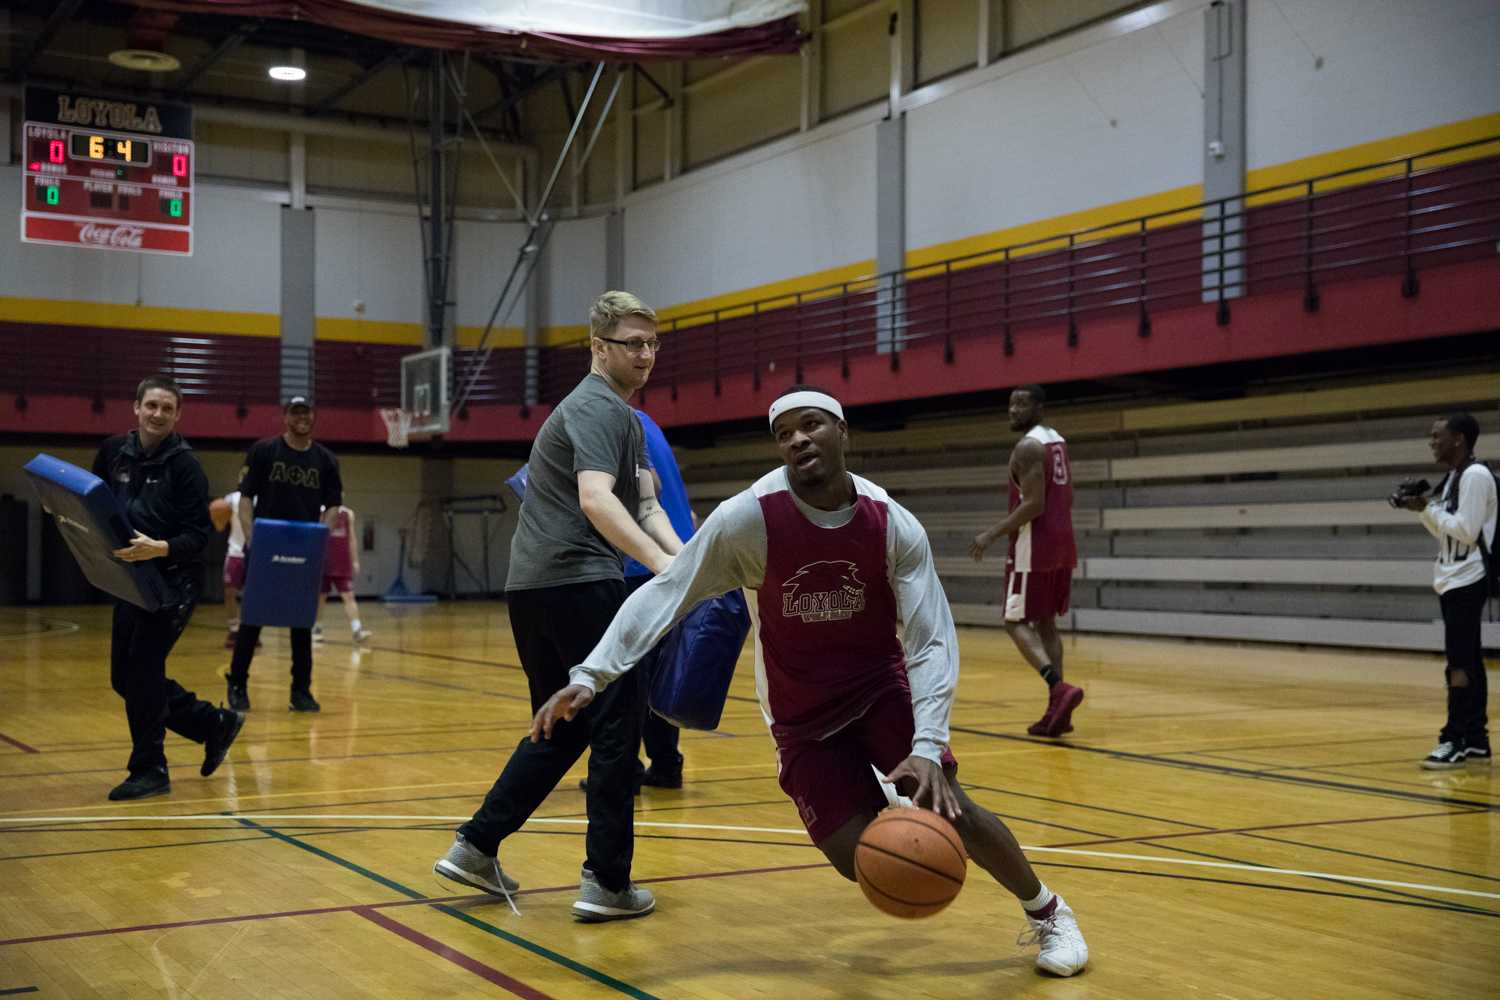 Nick Parker, business junior, races to the hoop during practice on March 10. The Wolf Pack take on the William Penn University Statesmen on Wednesday, March 15 at 8:00 p.m. at Municipal Auditorium in Kansas City, Missouri. Photo credit: Osama Ayyad